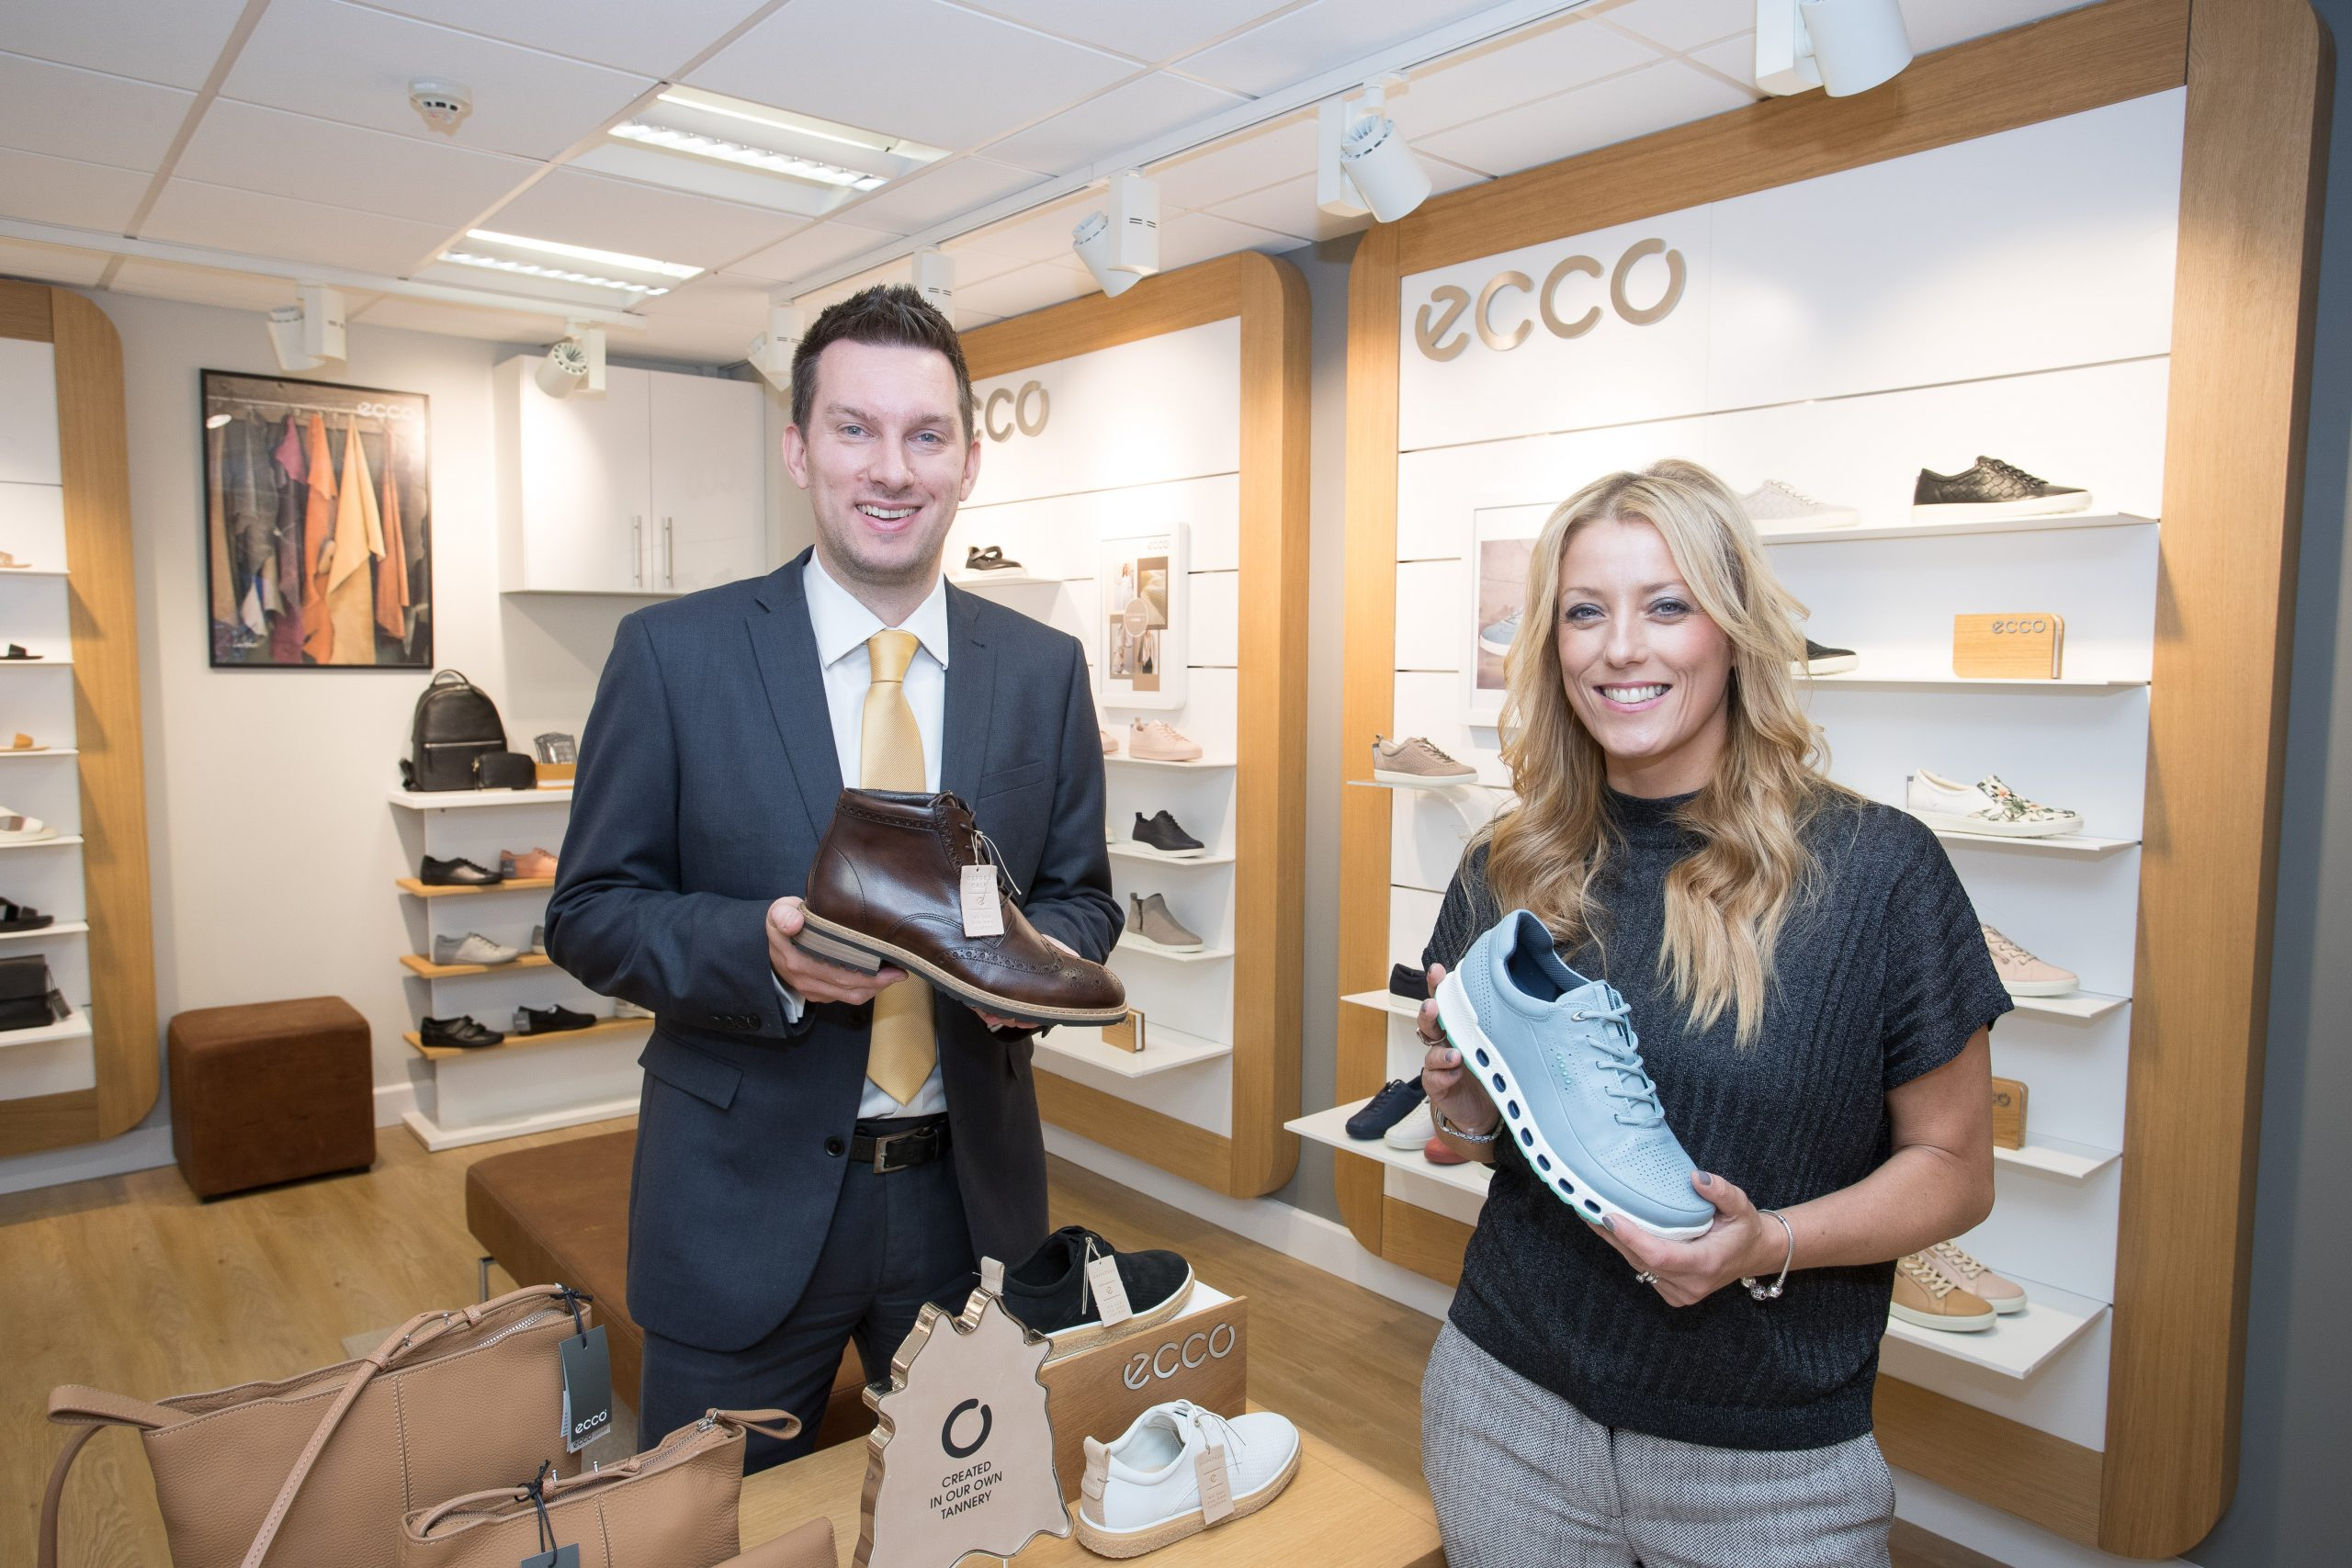 Rhys Owen; Leasing Director for Orbit Developments and Louise Cam; UK Sales Manager for ECCO